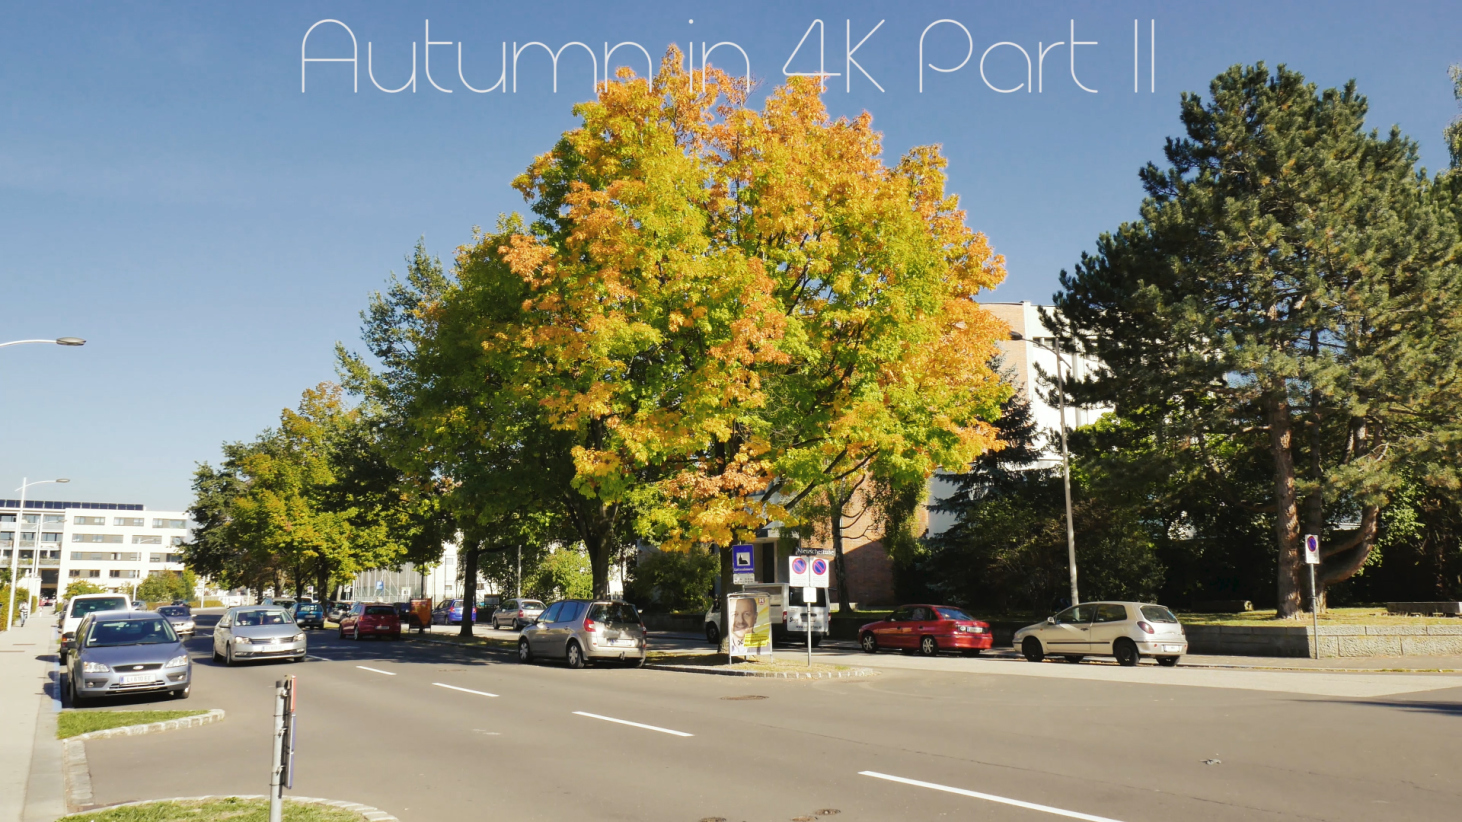 Autumn in 4K Part II